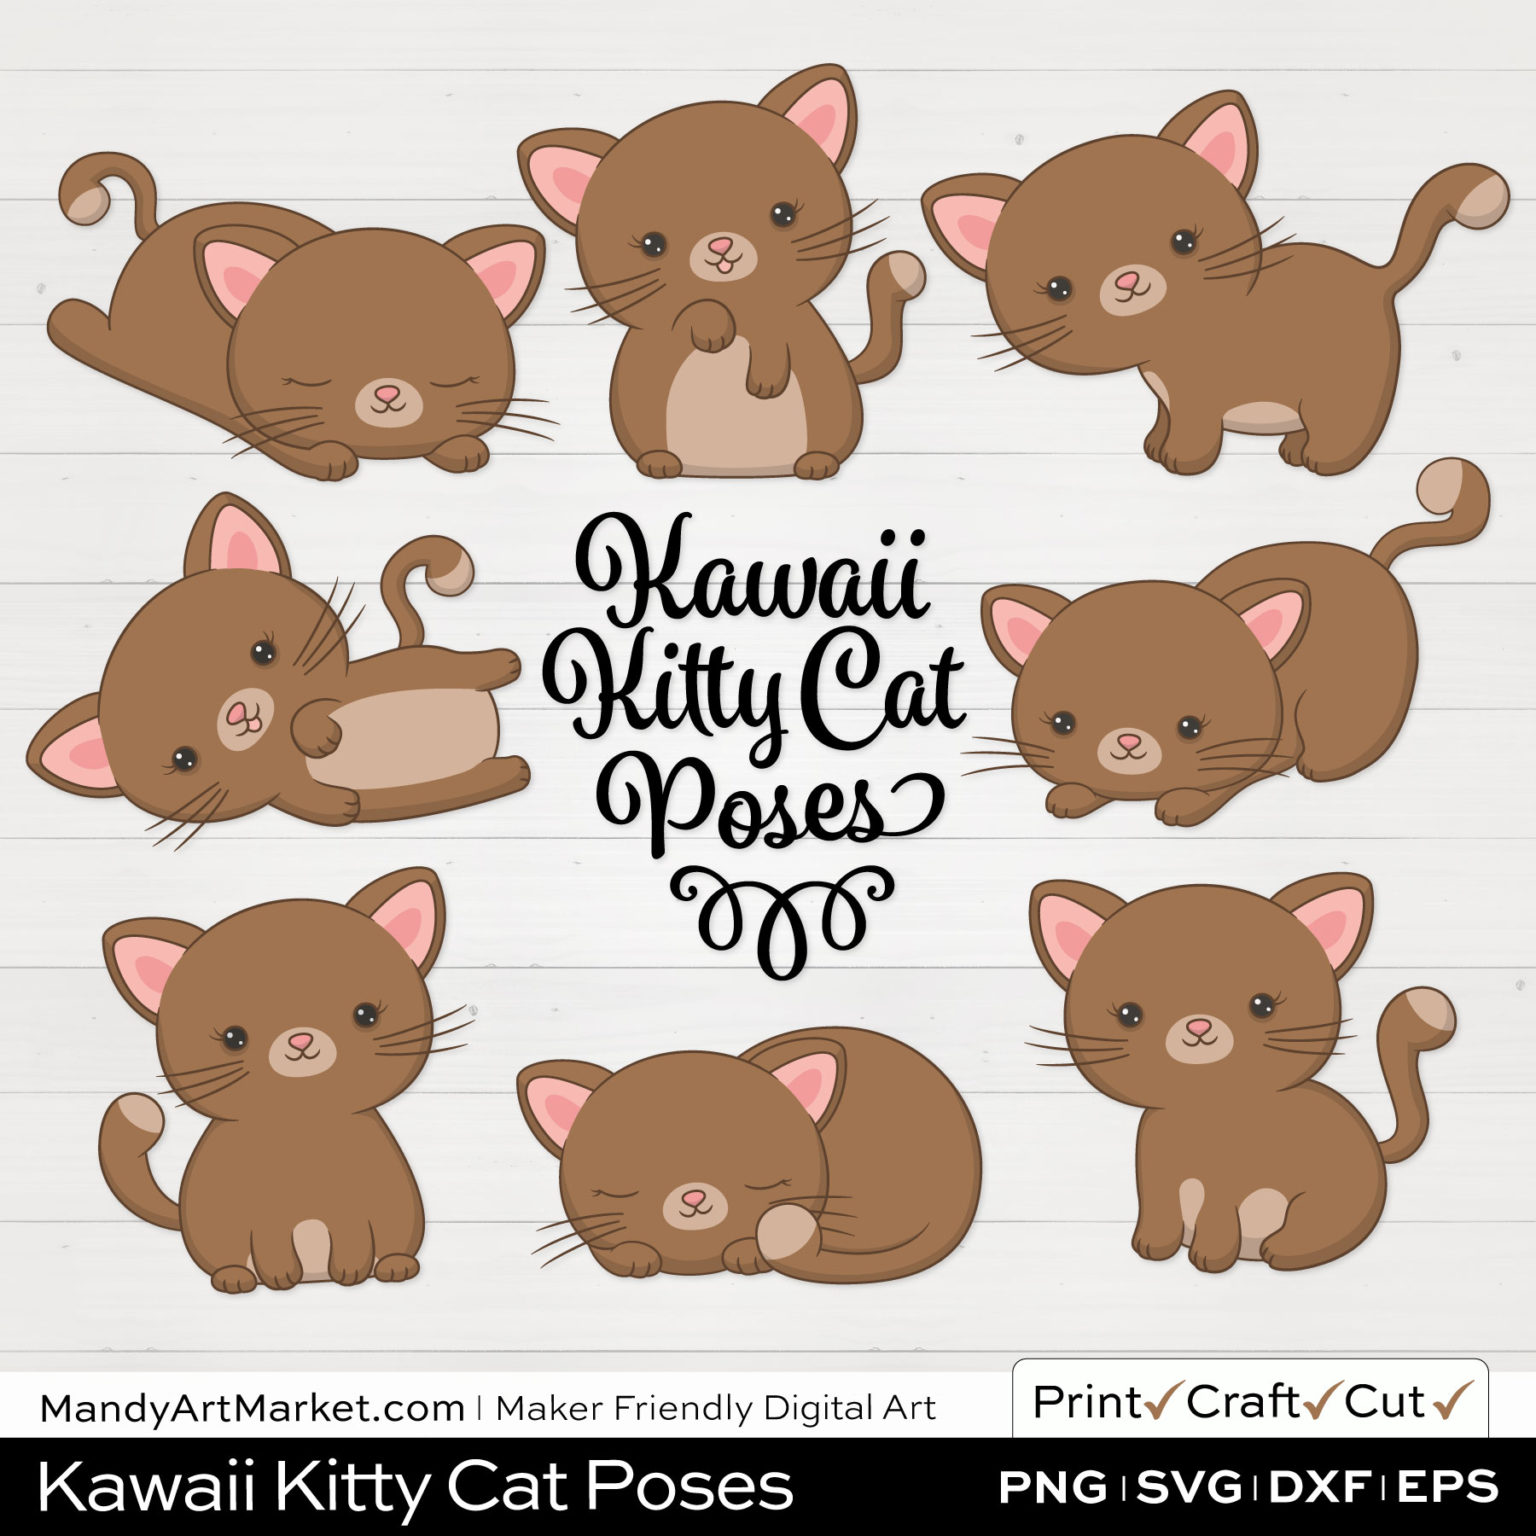 Coffee Brown Kawaii Kitty Cat Poses Clipart on White Background